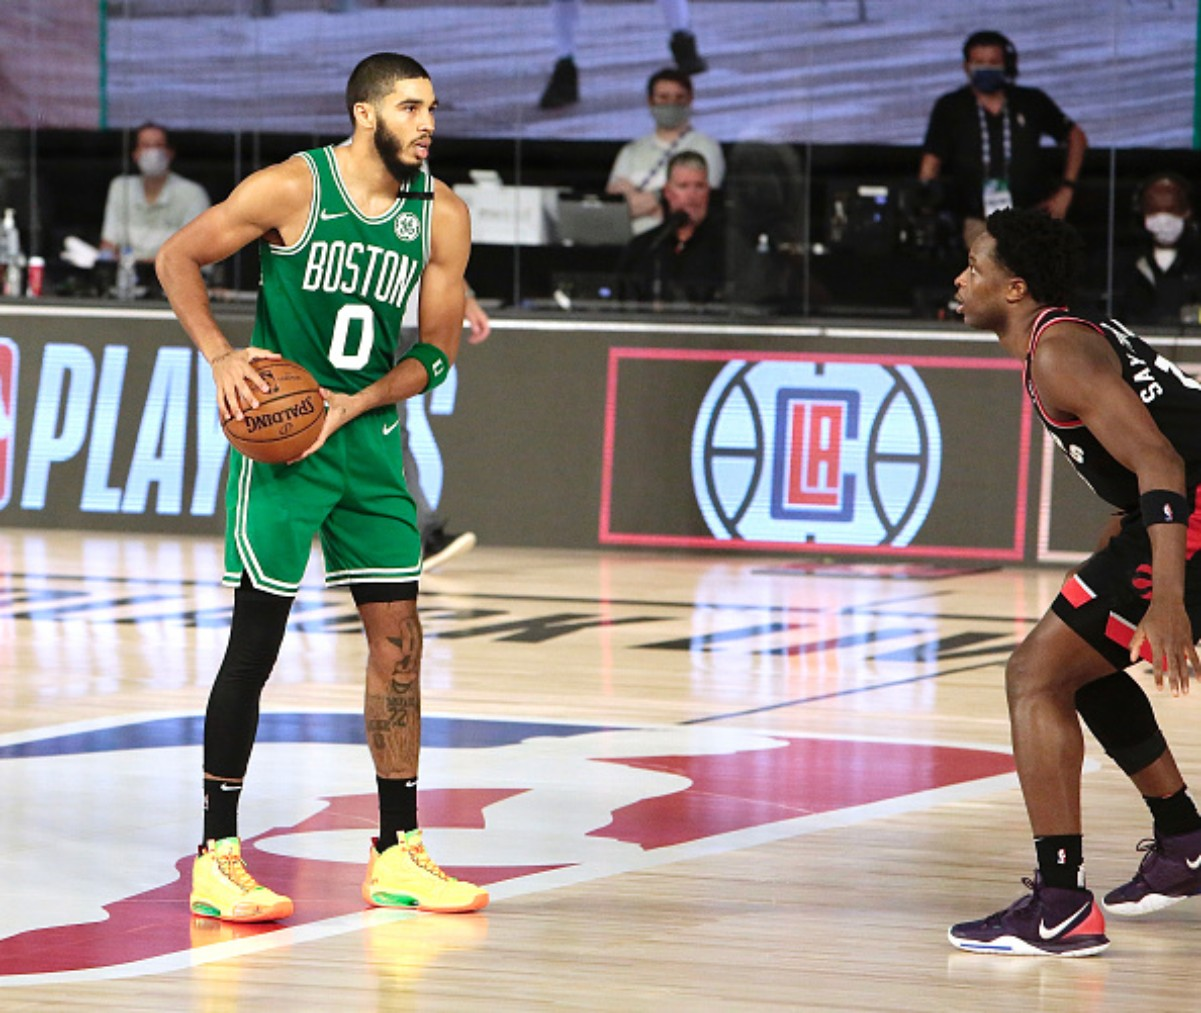 Jayson Tatum has been the Celtics top player in the playoffs